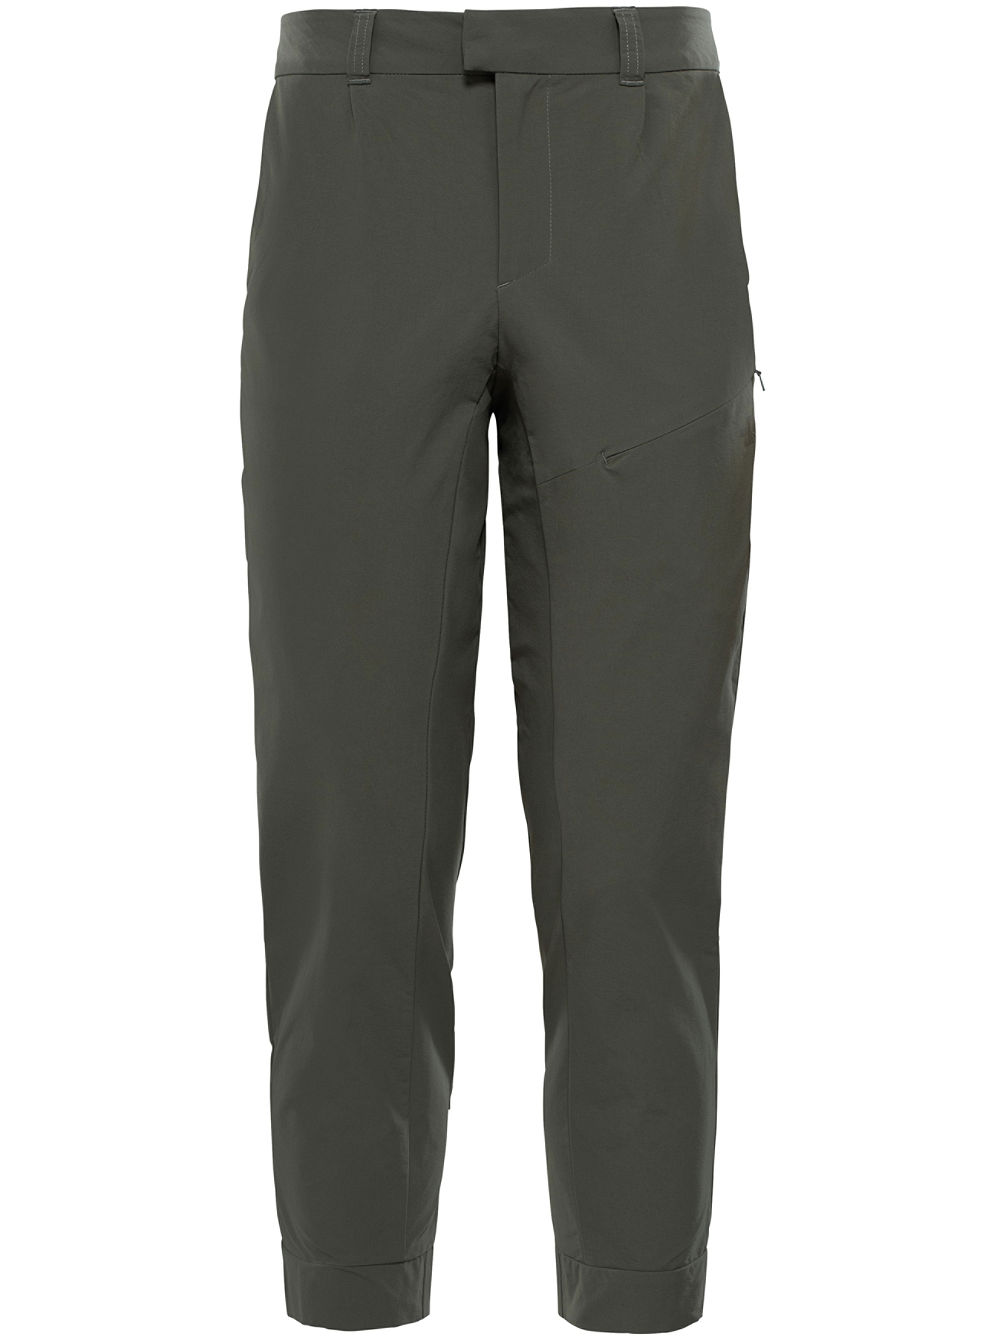 Inlux Cropped Outdoor Pants